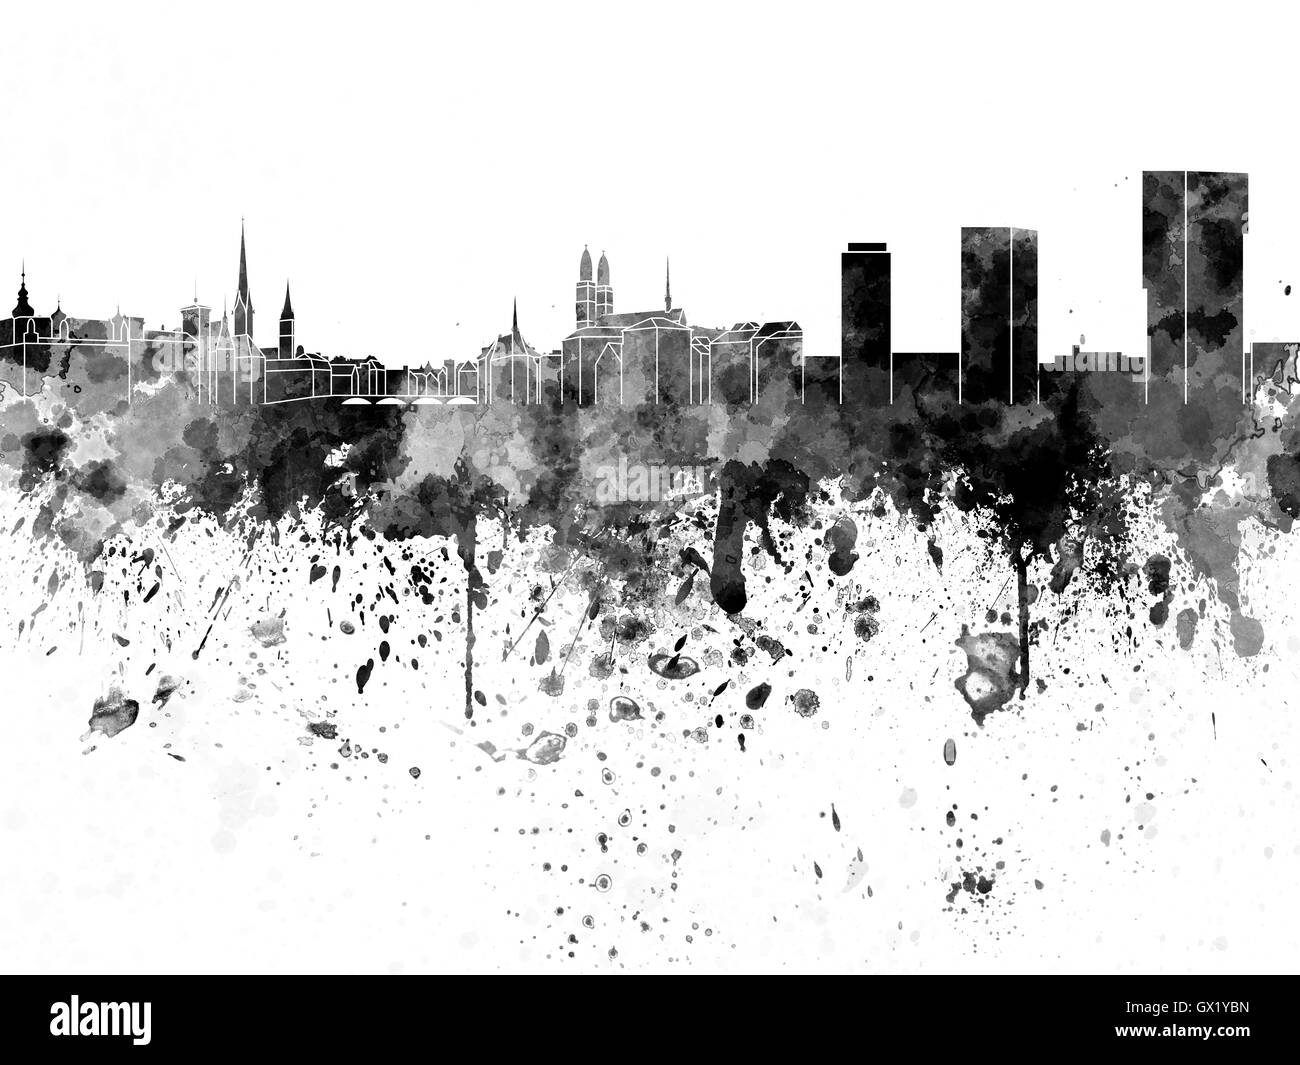 Zurich skyline in black watercolor on white background - Stock Image